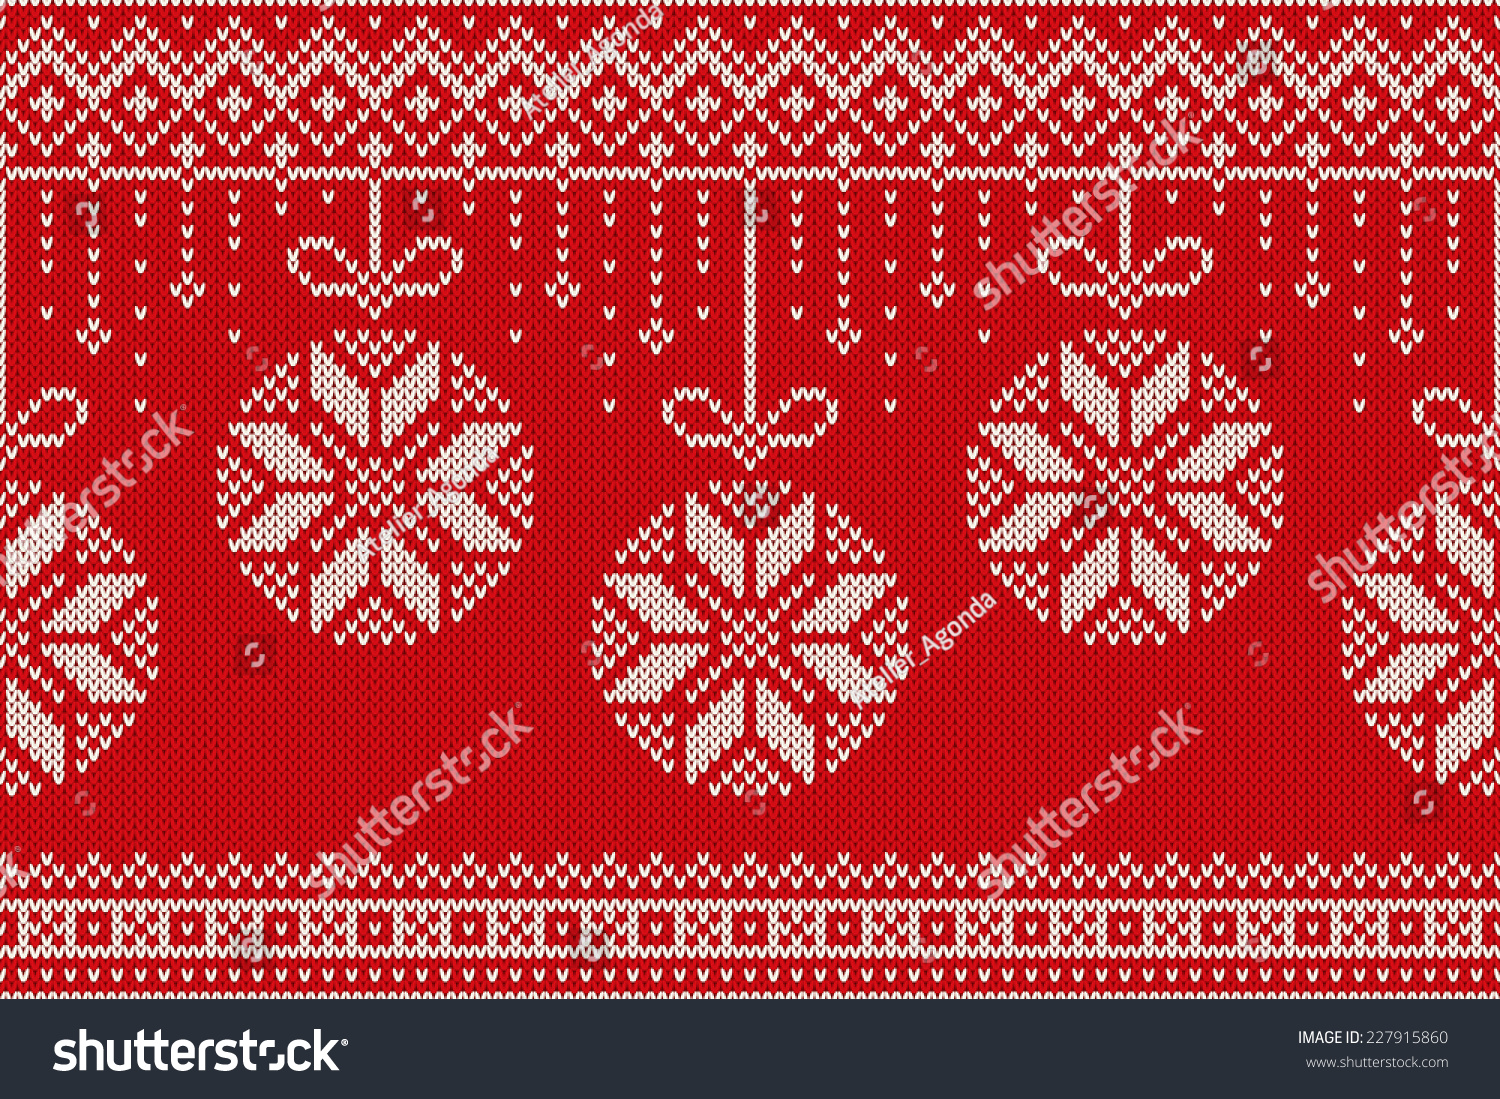 Winter Holiday Seamless Knitting Pattern Christmas Stock Vector 227915860 - S...